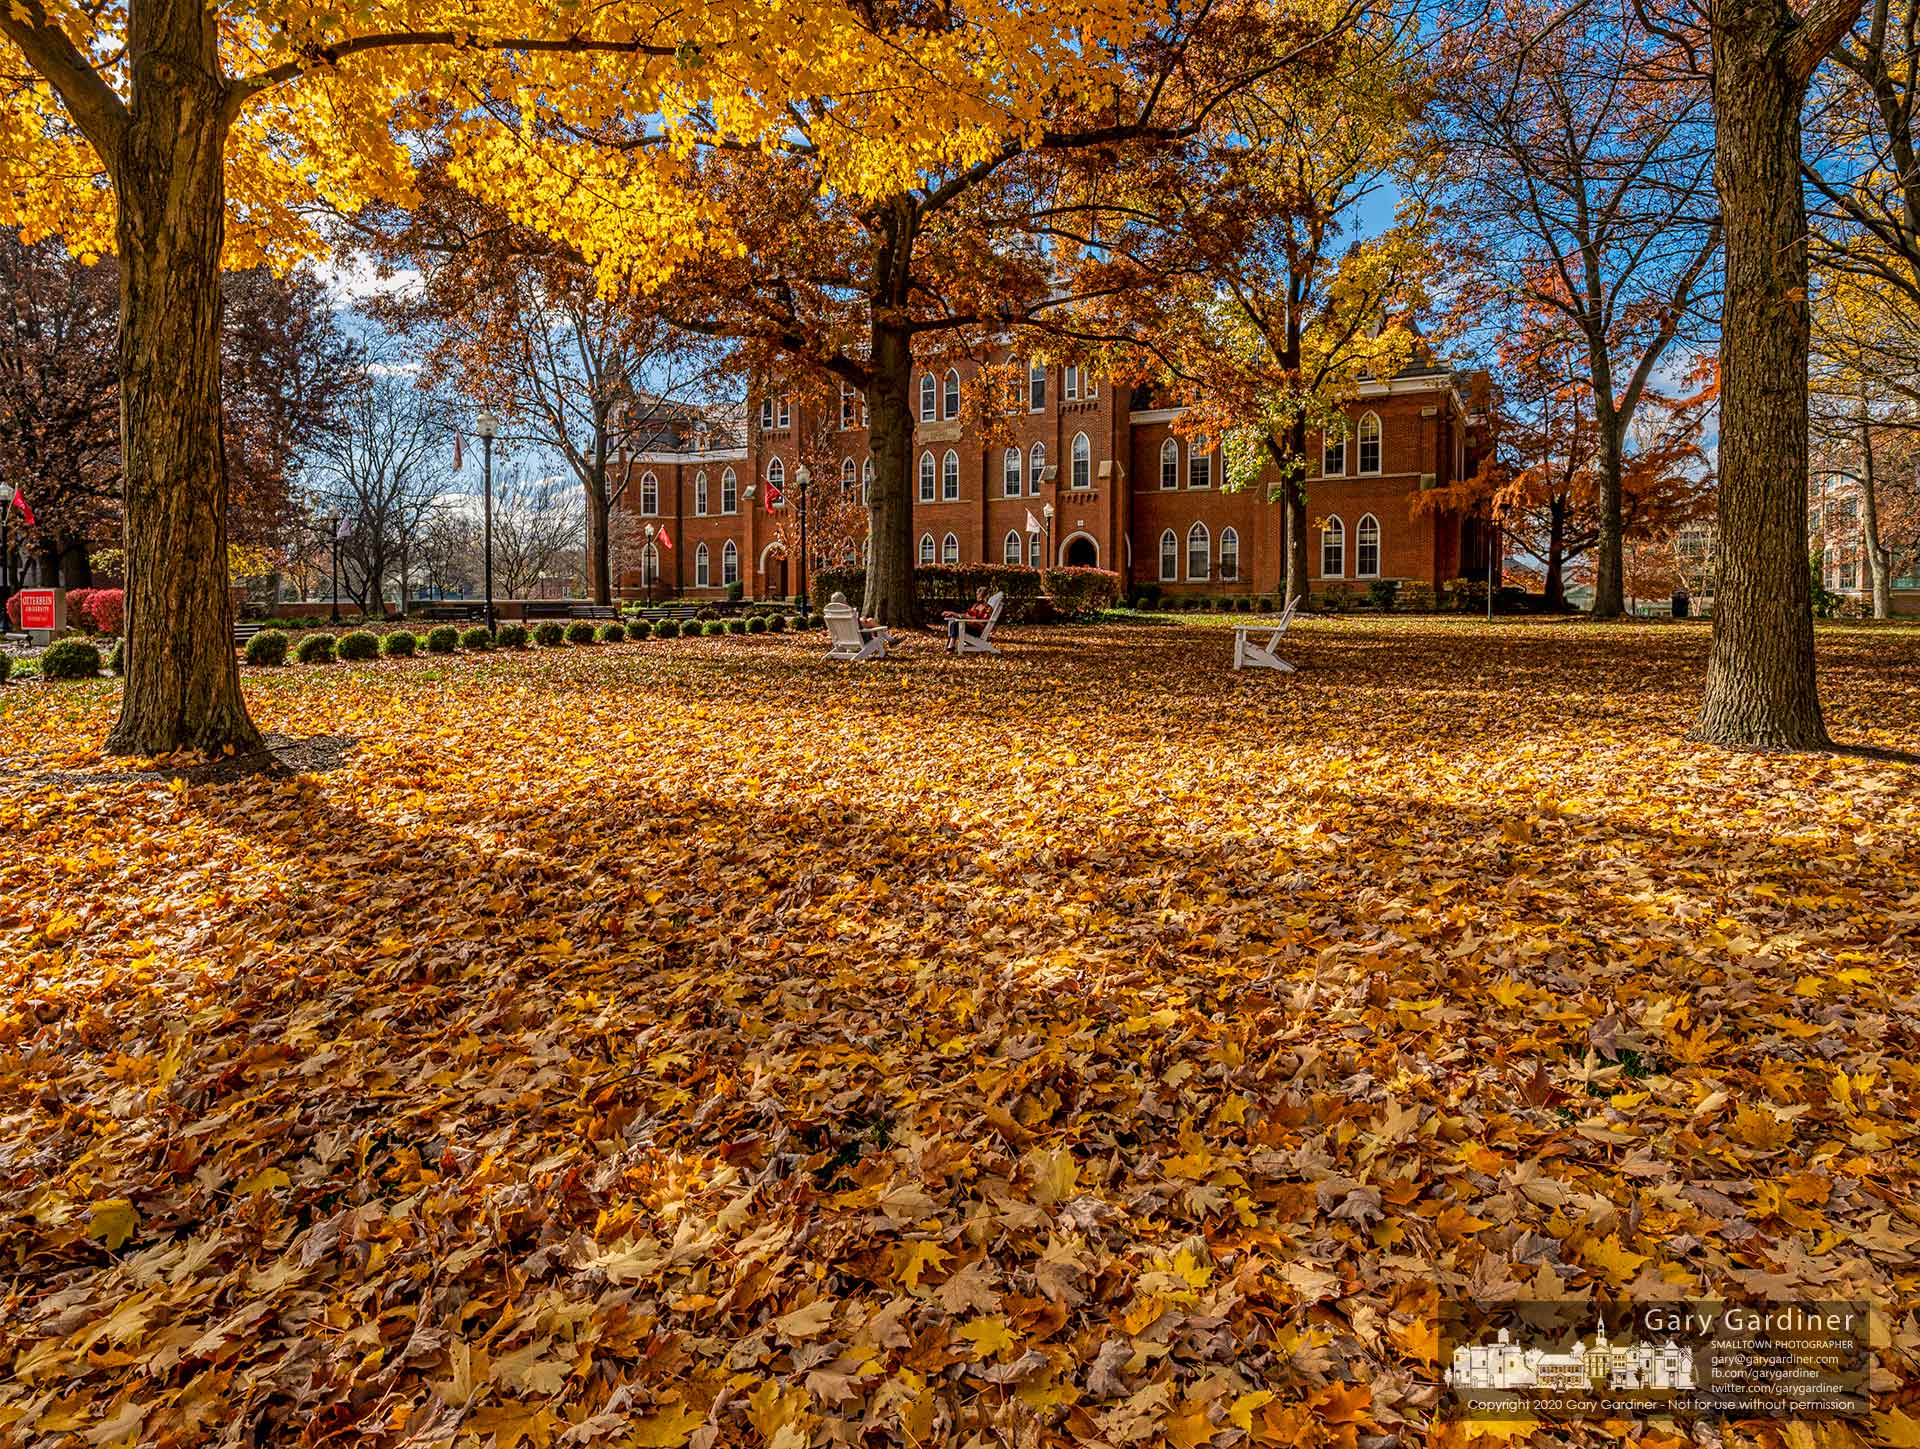 A carpet of maple leaves covers a portion of the grounds around Towers Hall where students and staff enjoy themselves in Adirondack chairs on an unusually warm fall day. My Final Photo for Nov. 10, 2020.